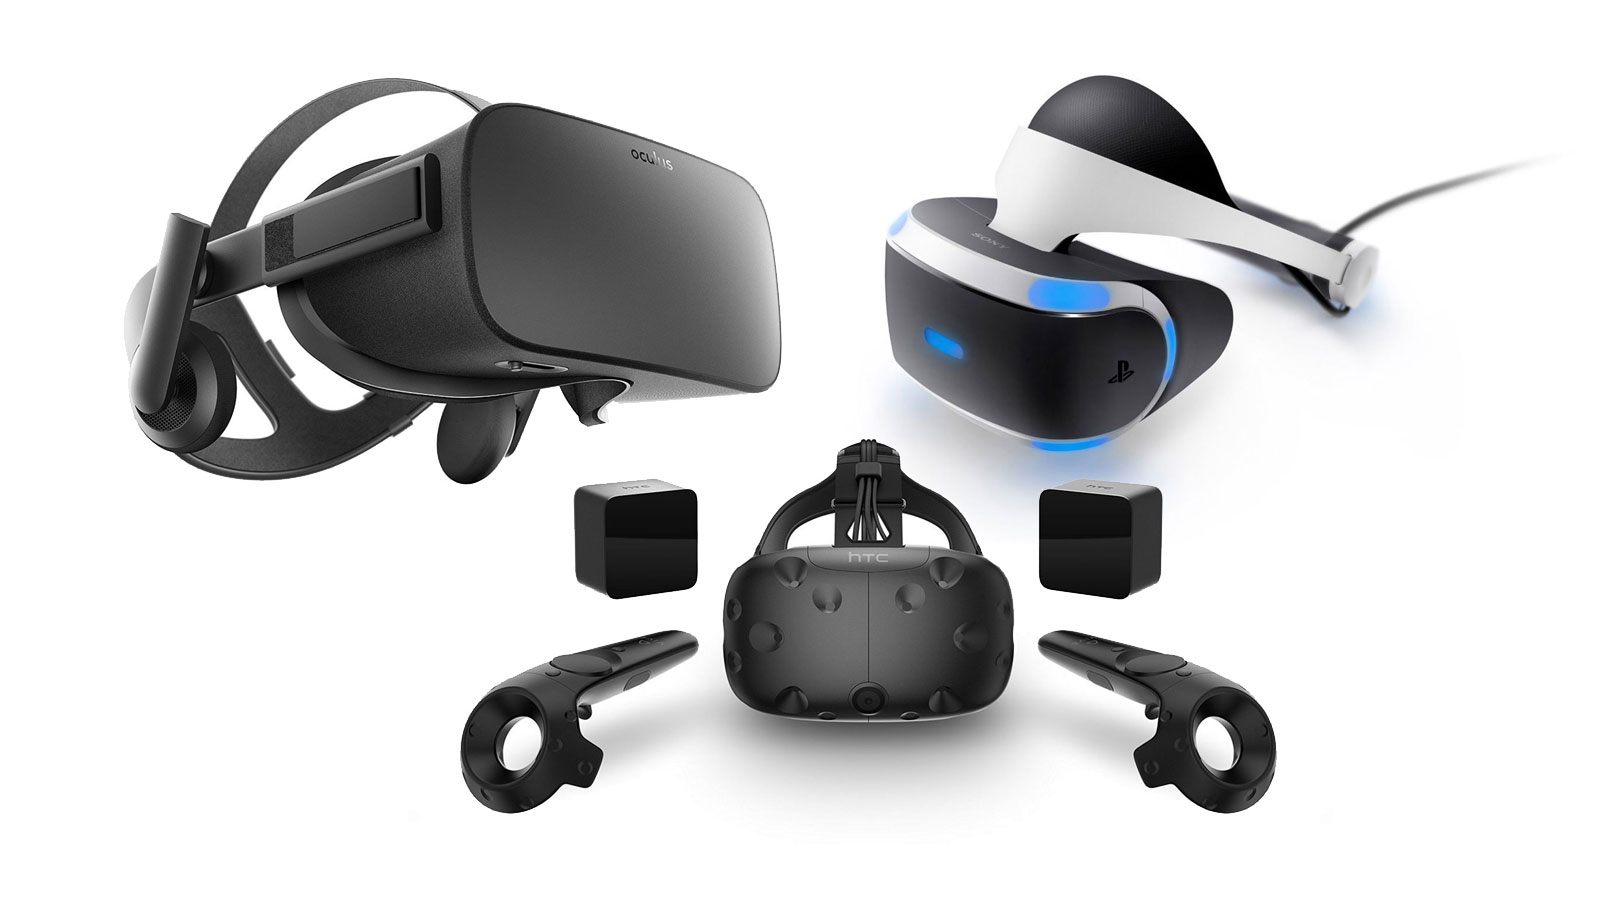 Oculus Rift vs HTC Vive vs Playstation VR  | GIFTS FOR MEN: THE | BEST GIFTS FOR TECHIES